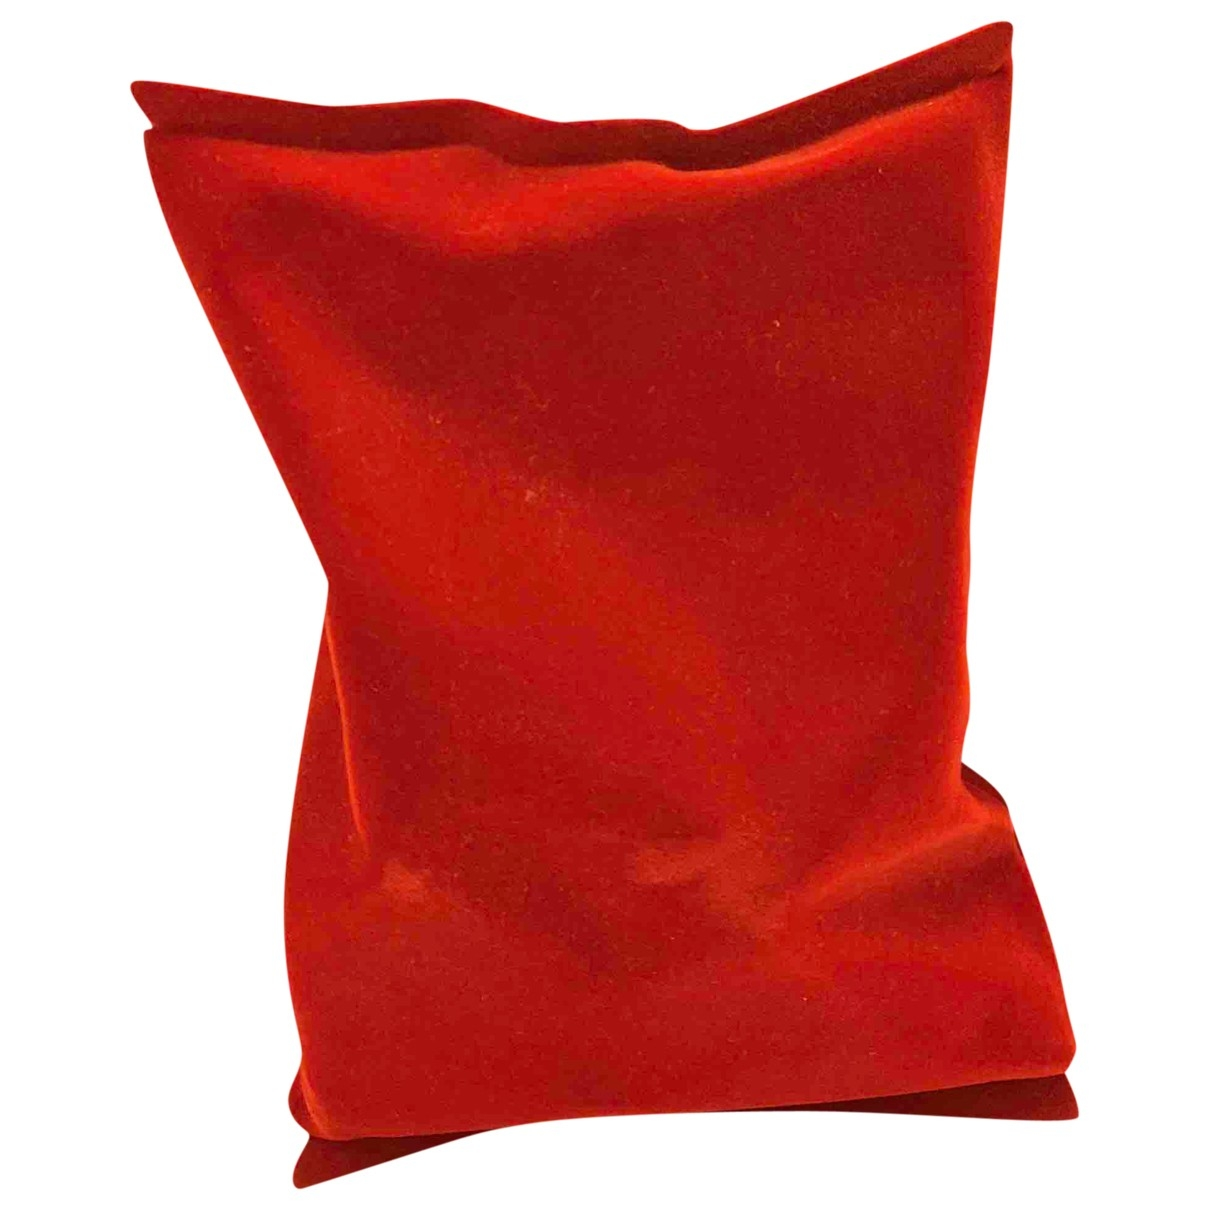 Anya Hindmarch Crisp Packet Clutch in  Rot Samt